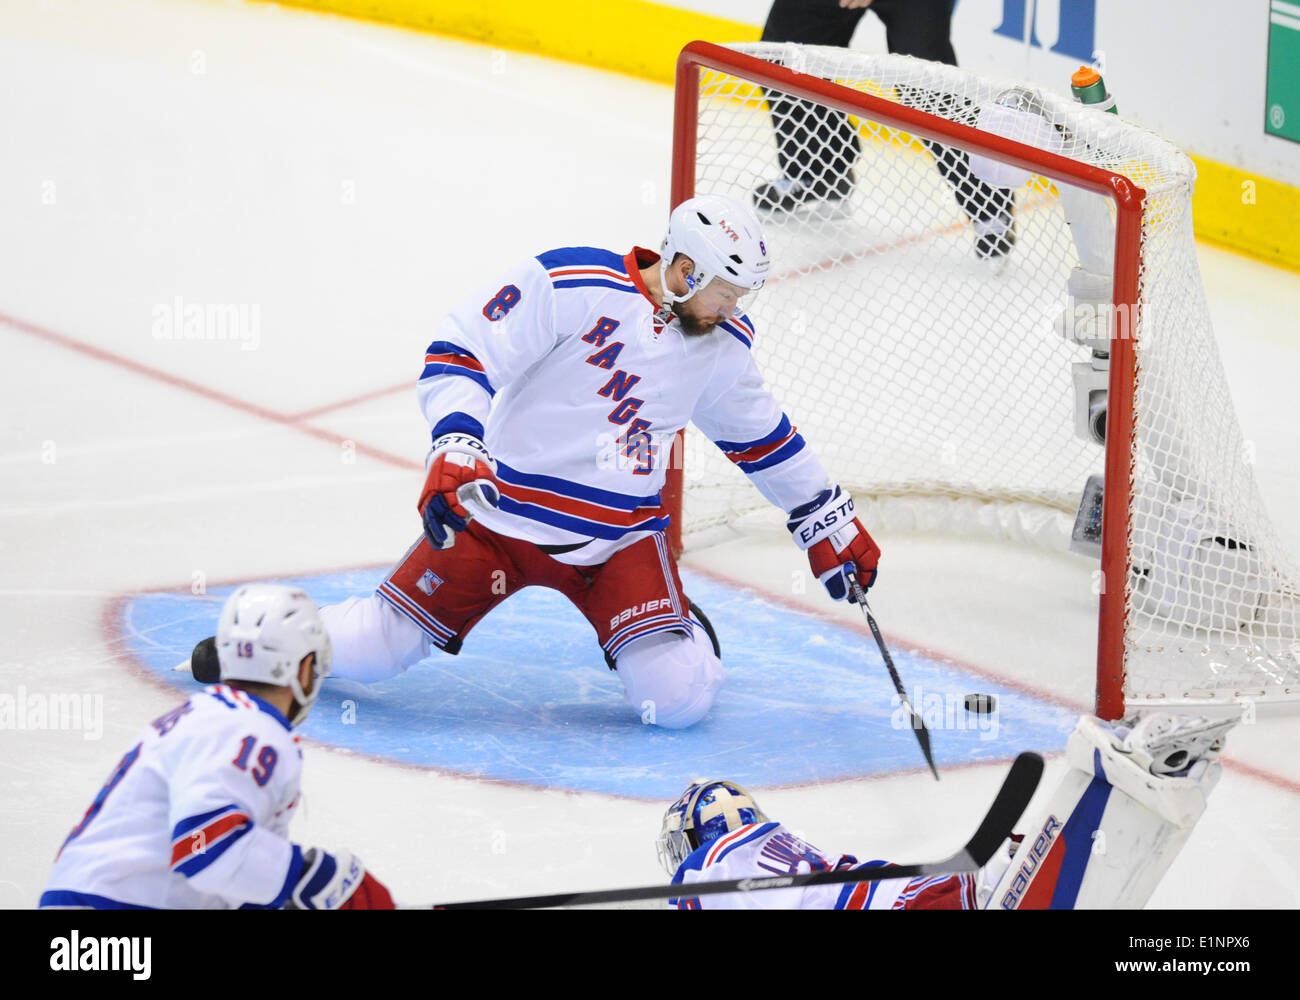 Staples Center, Los Angeles, California, USA. 07th June, 2014. New York Rangers Defenseman Kevin Klein (8) [3515] attempts to cover the net as New York Rangers Goalie Henrik Lundqvist (30) [2585] is knocked out of the crease and gives up a goal to the Kings during game 2 of the Stanley Cup Final between the New York Rangers and the Los Angeles Kings at Staples Center in Los Angeles, CA. - Stock Image